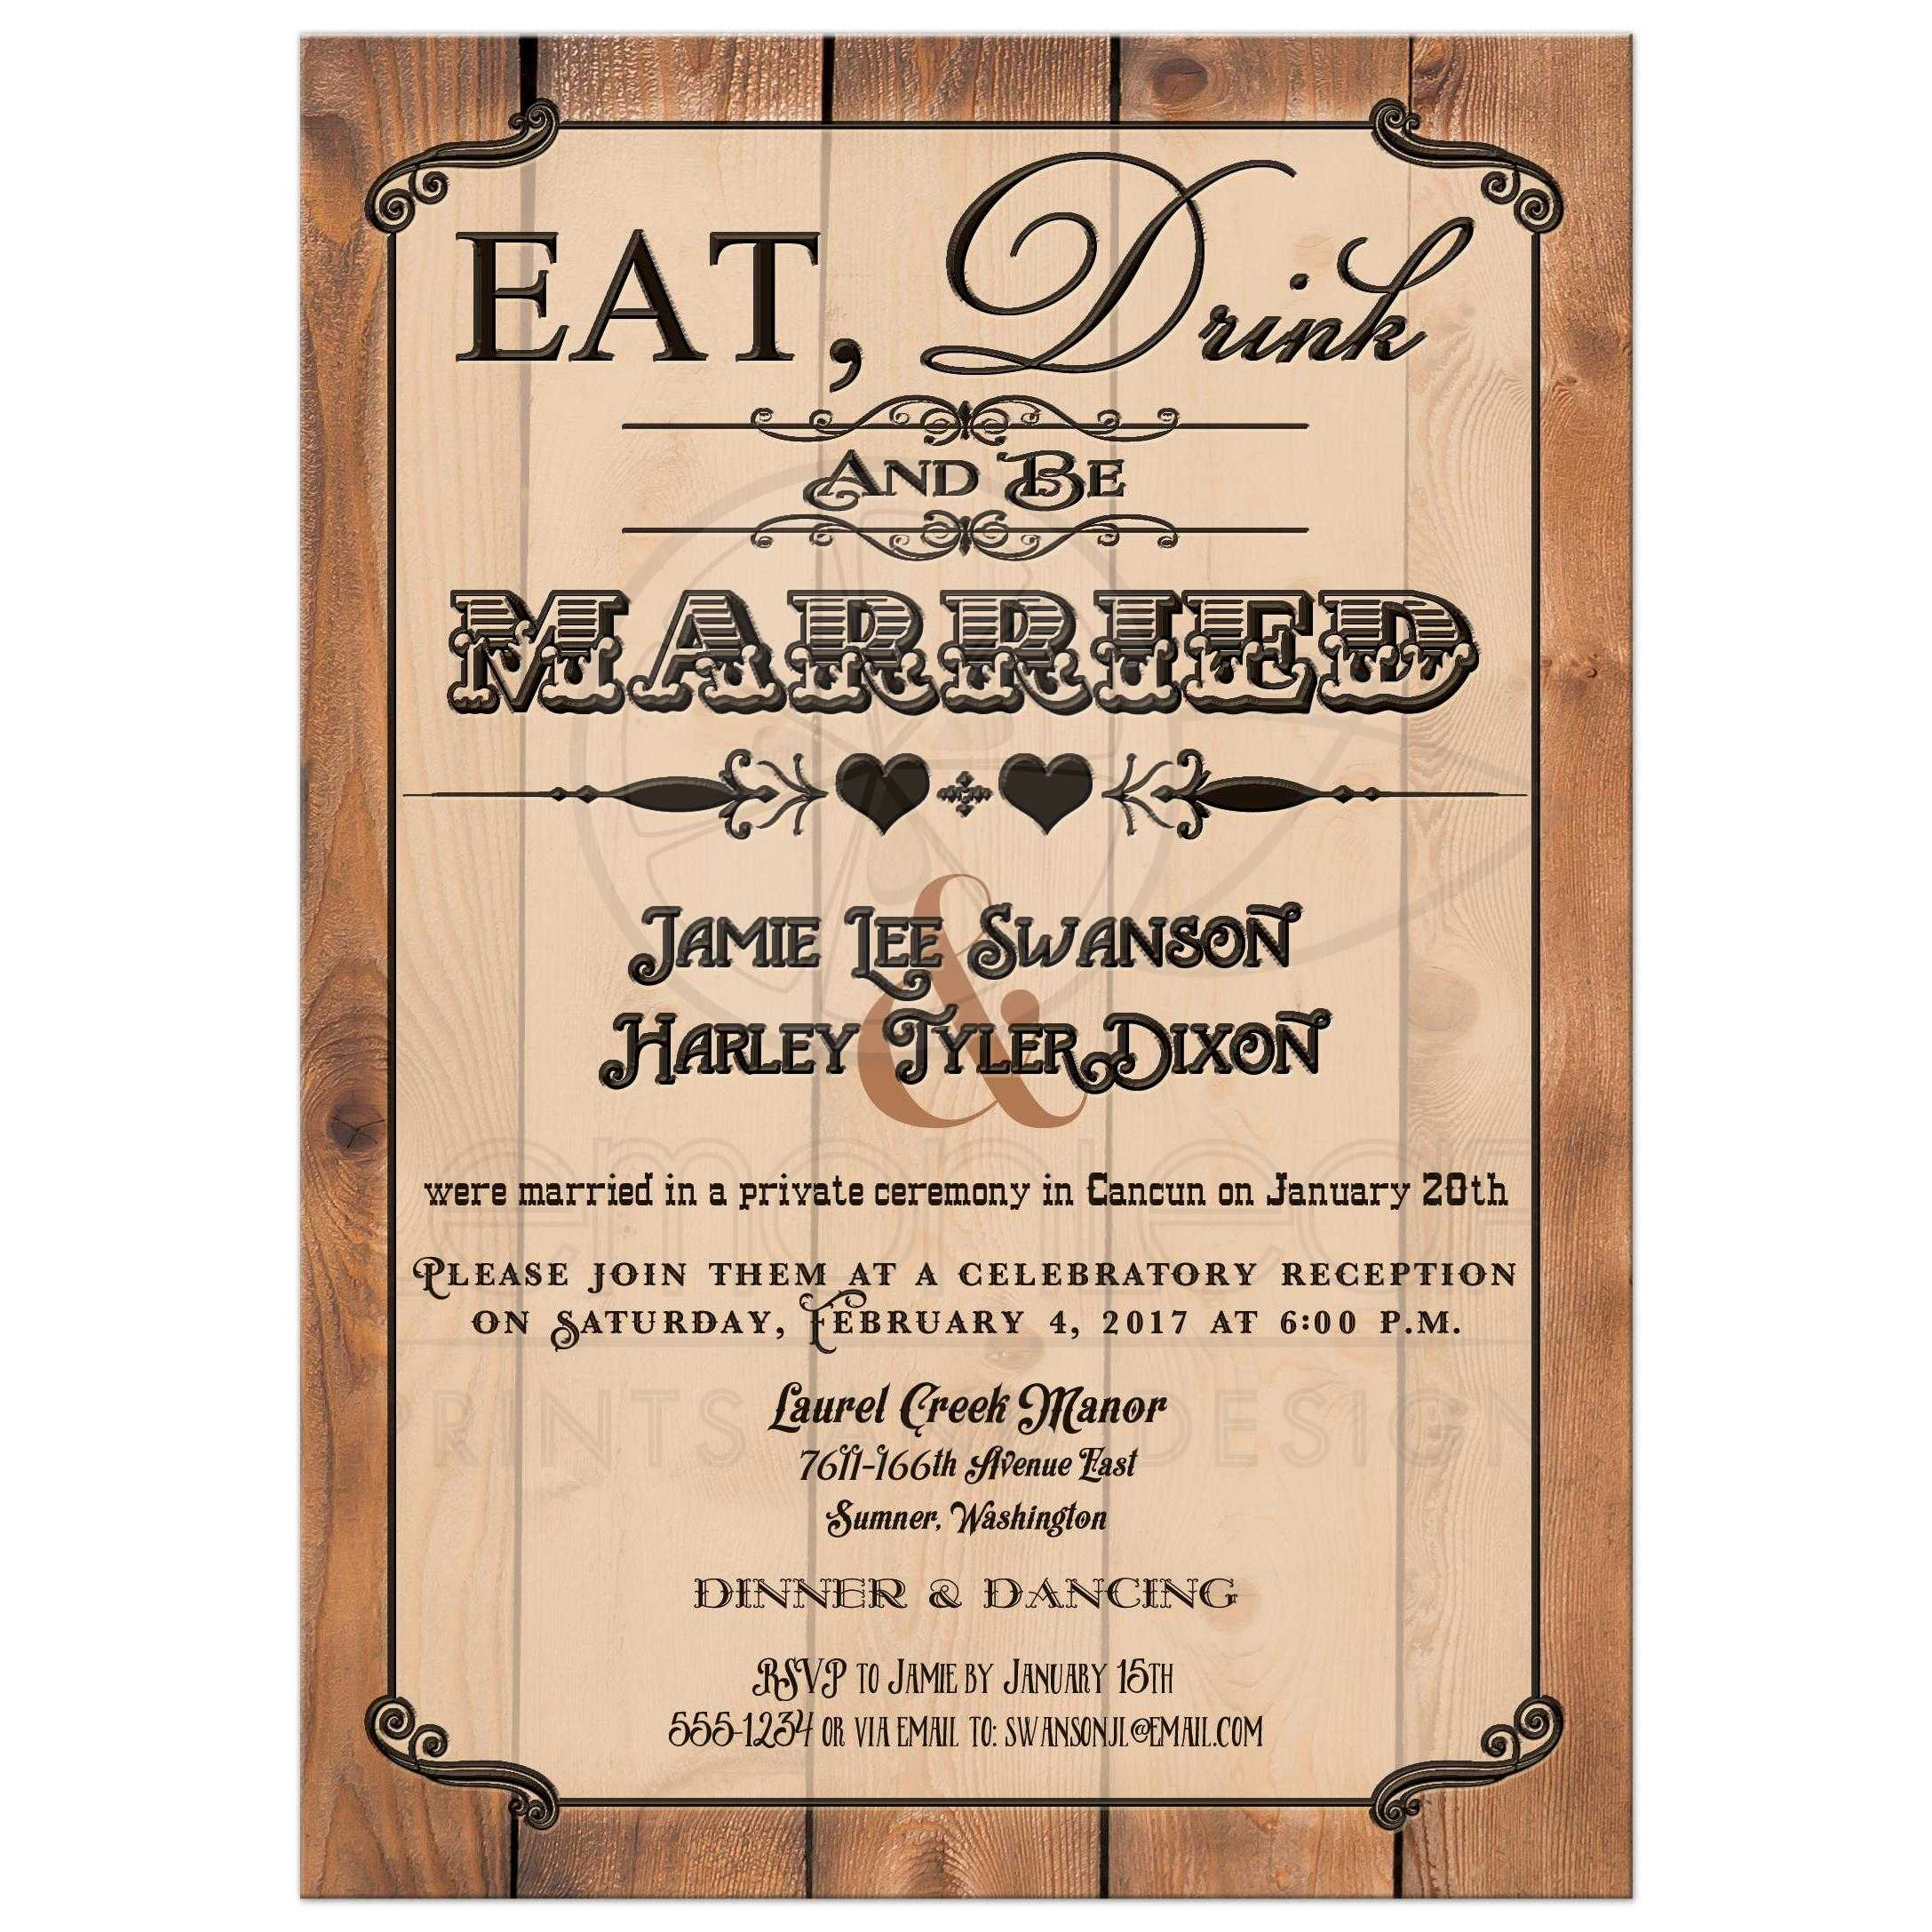 Great Eat Drink And Be Married Vintage Poster Style Post Wedding Reception Only Invites With